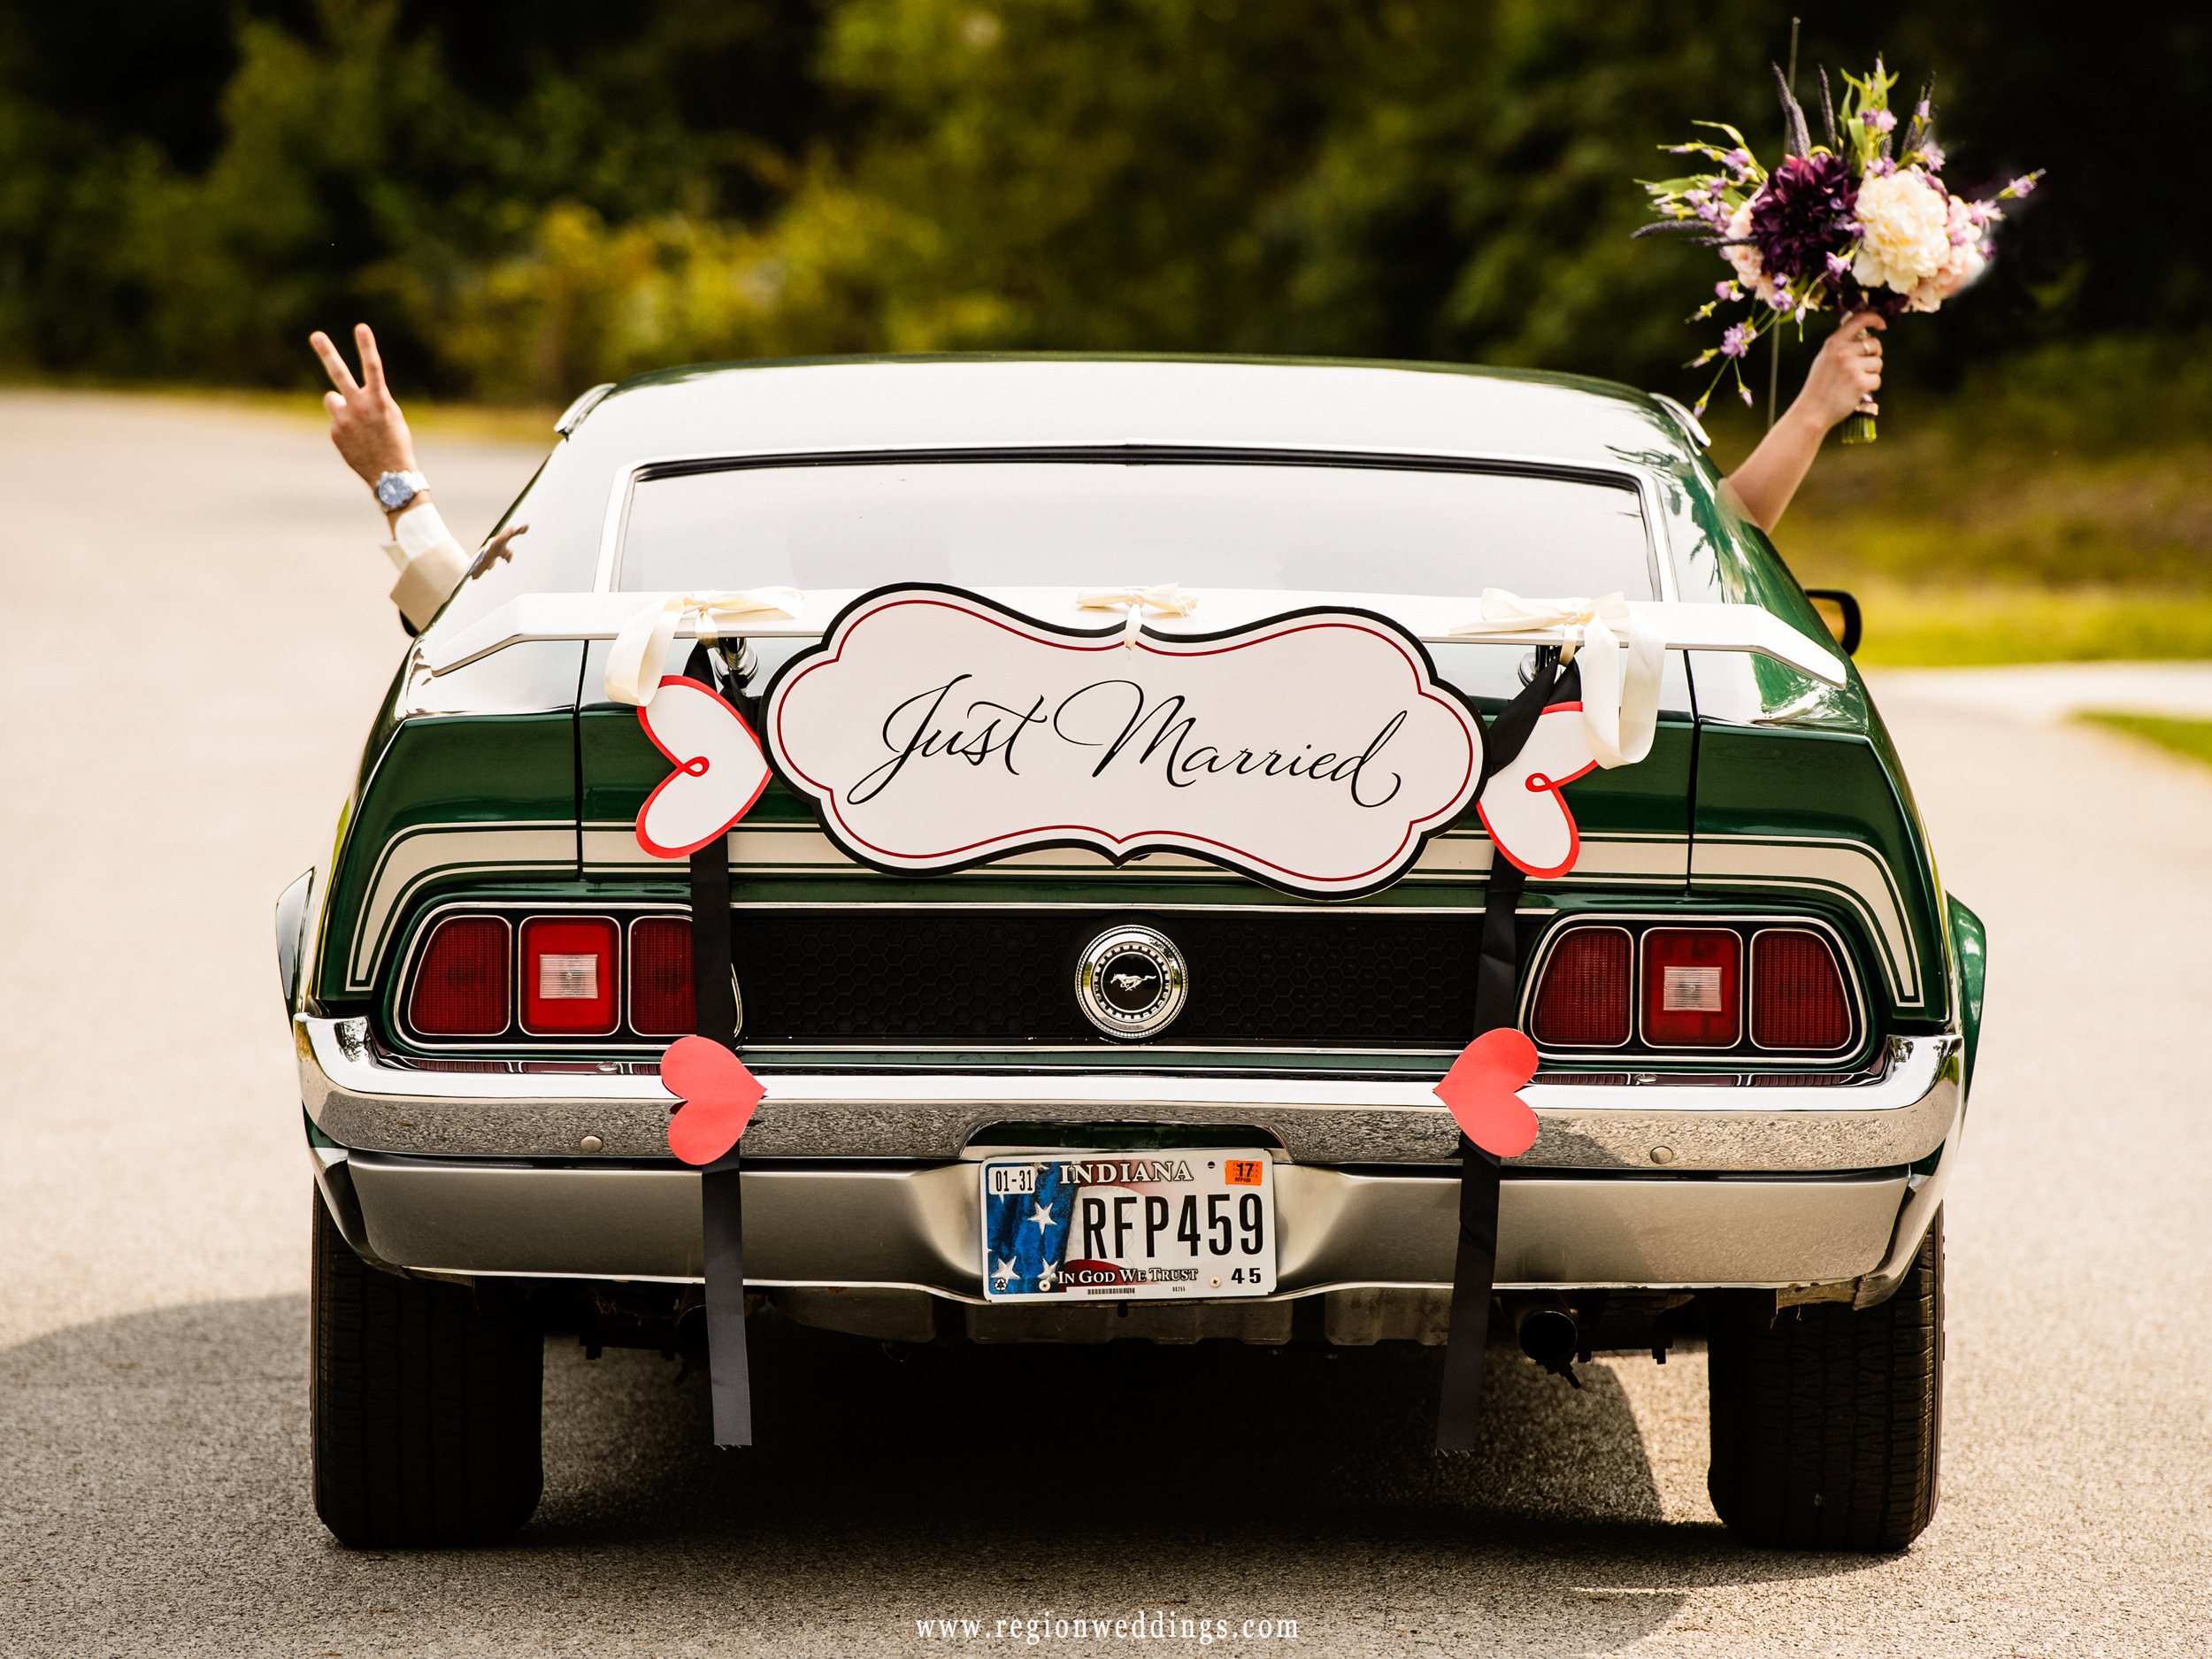 Bride and groom getaway drive in a classic Ford Mustang.